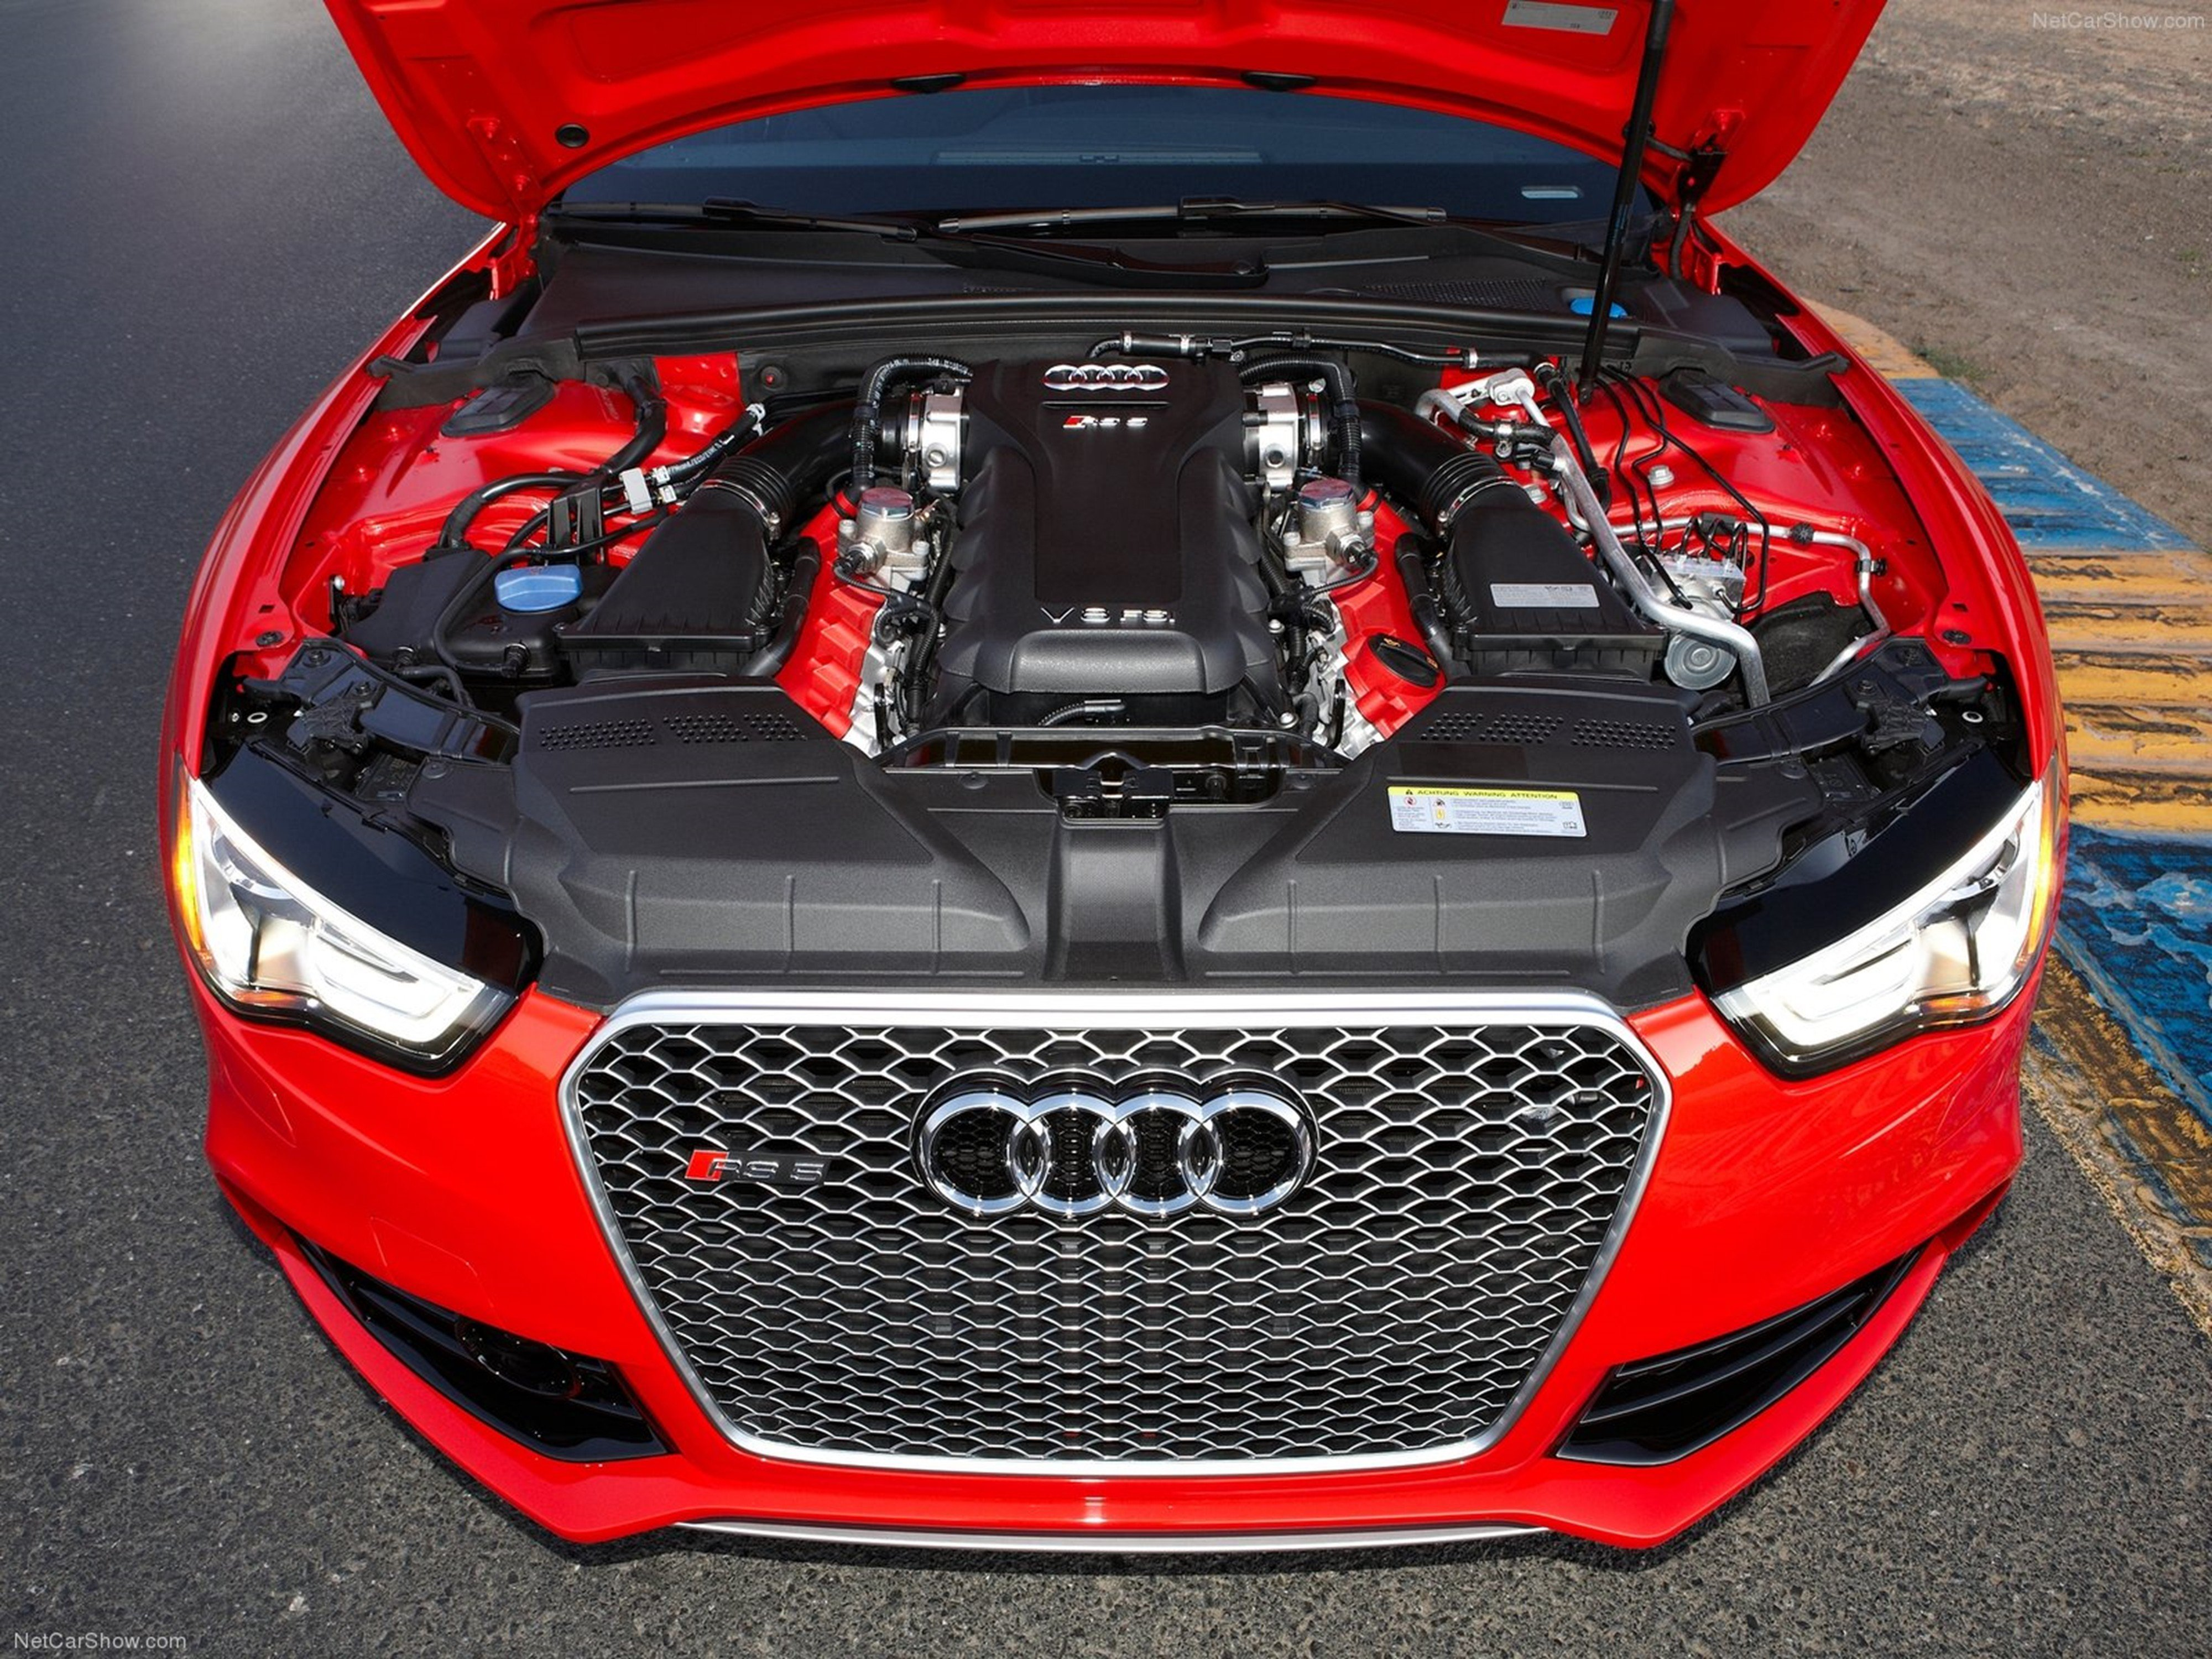 wallpapers engine car audi - photo #27